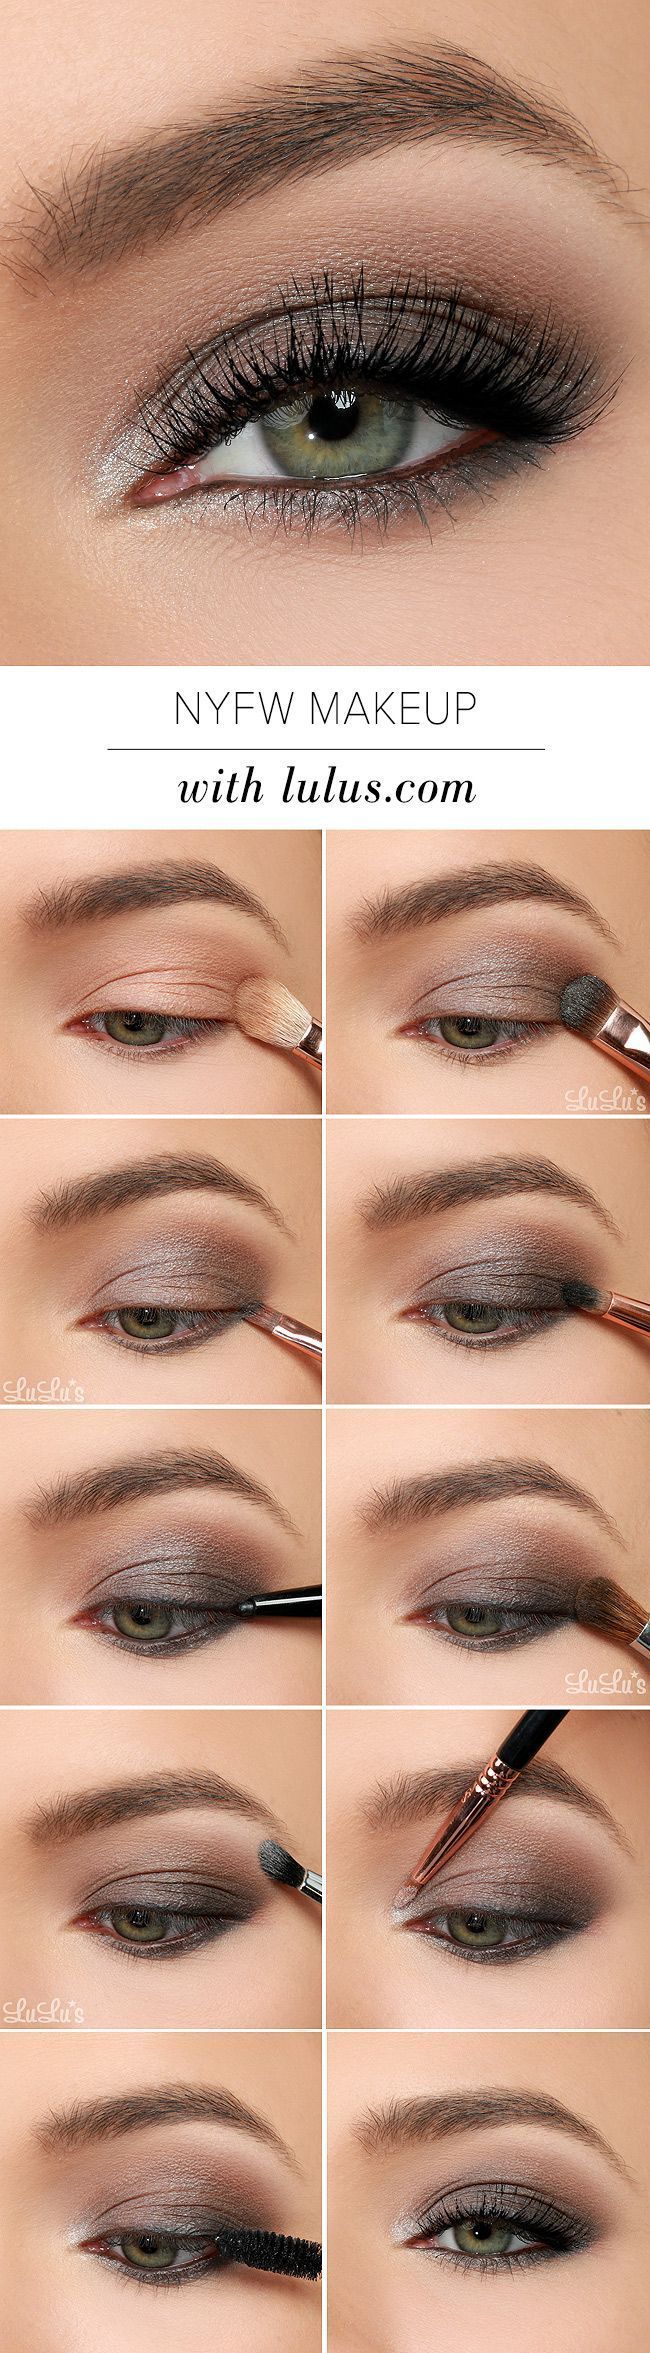 How to NYFW inspired Eye Make-up tutorial. Grayish & Brown Eye shadow for dull d…